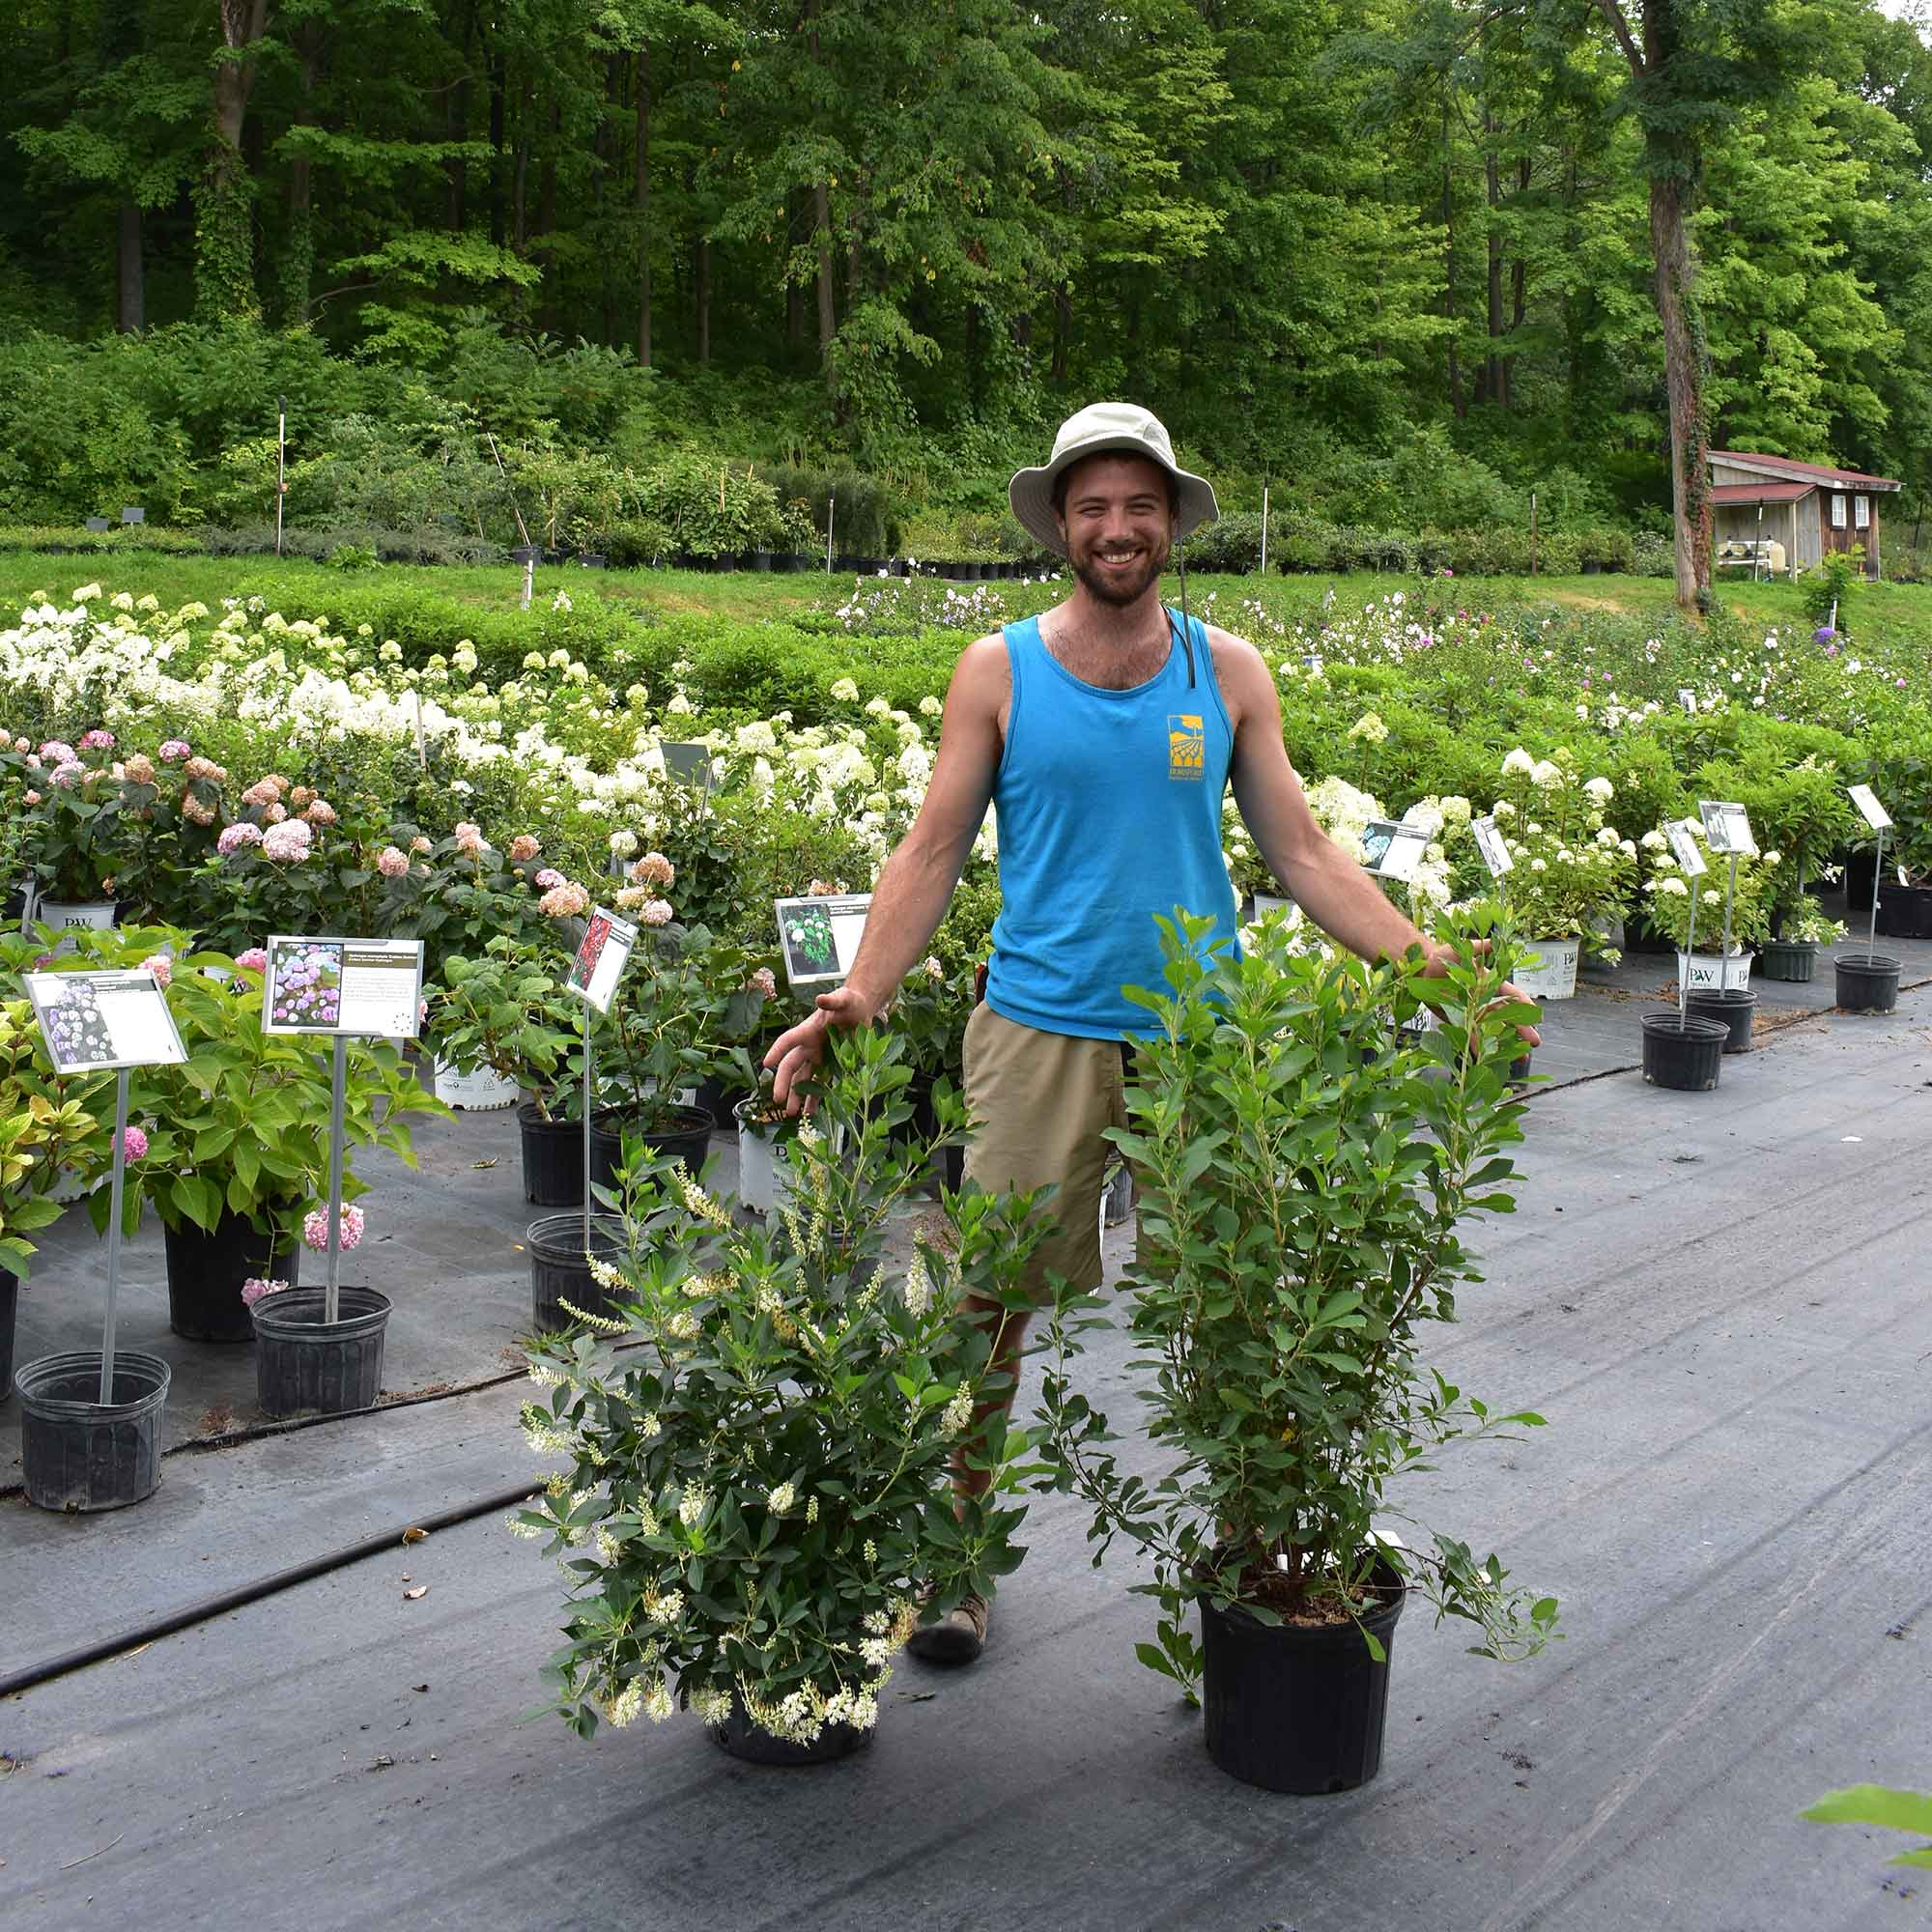 Team member with container shrubs